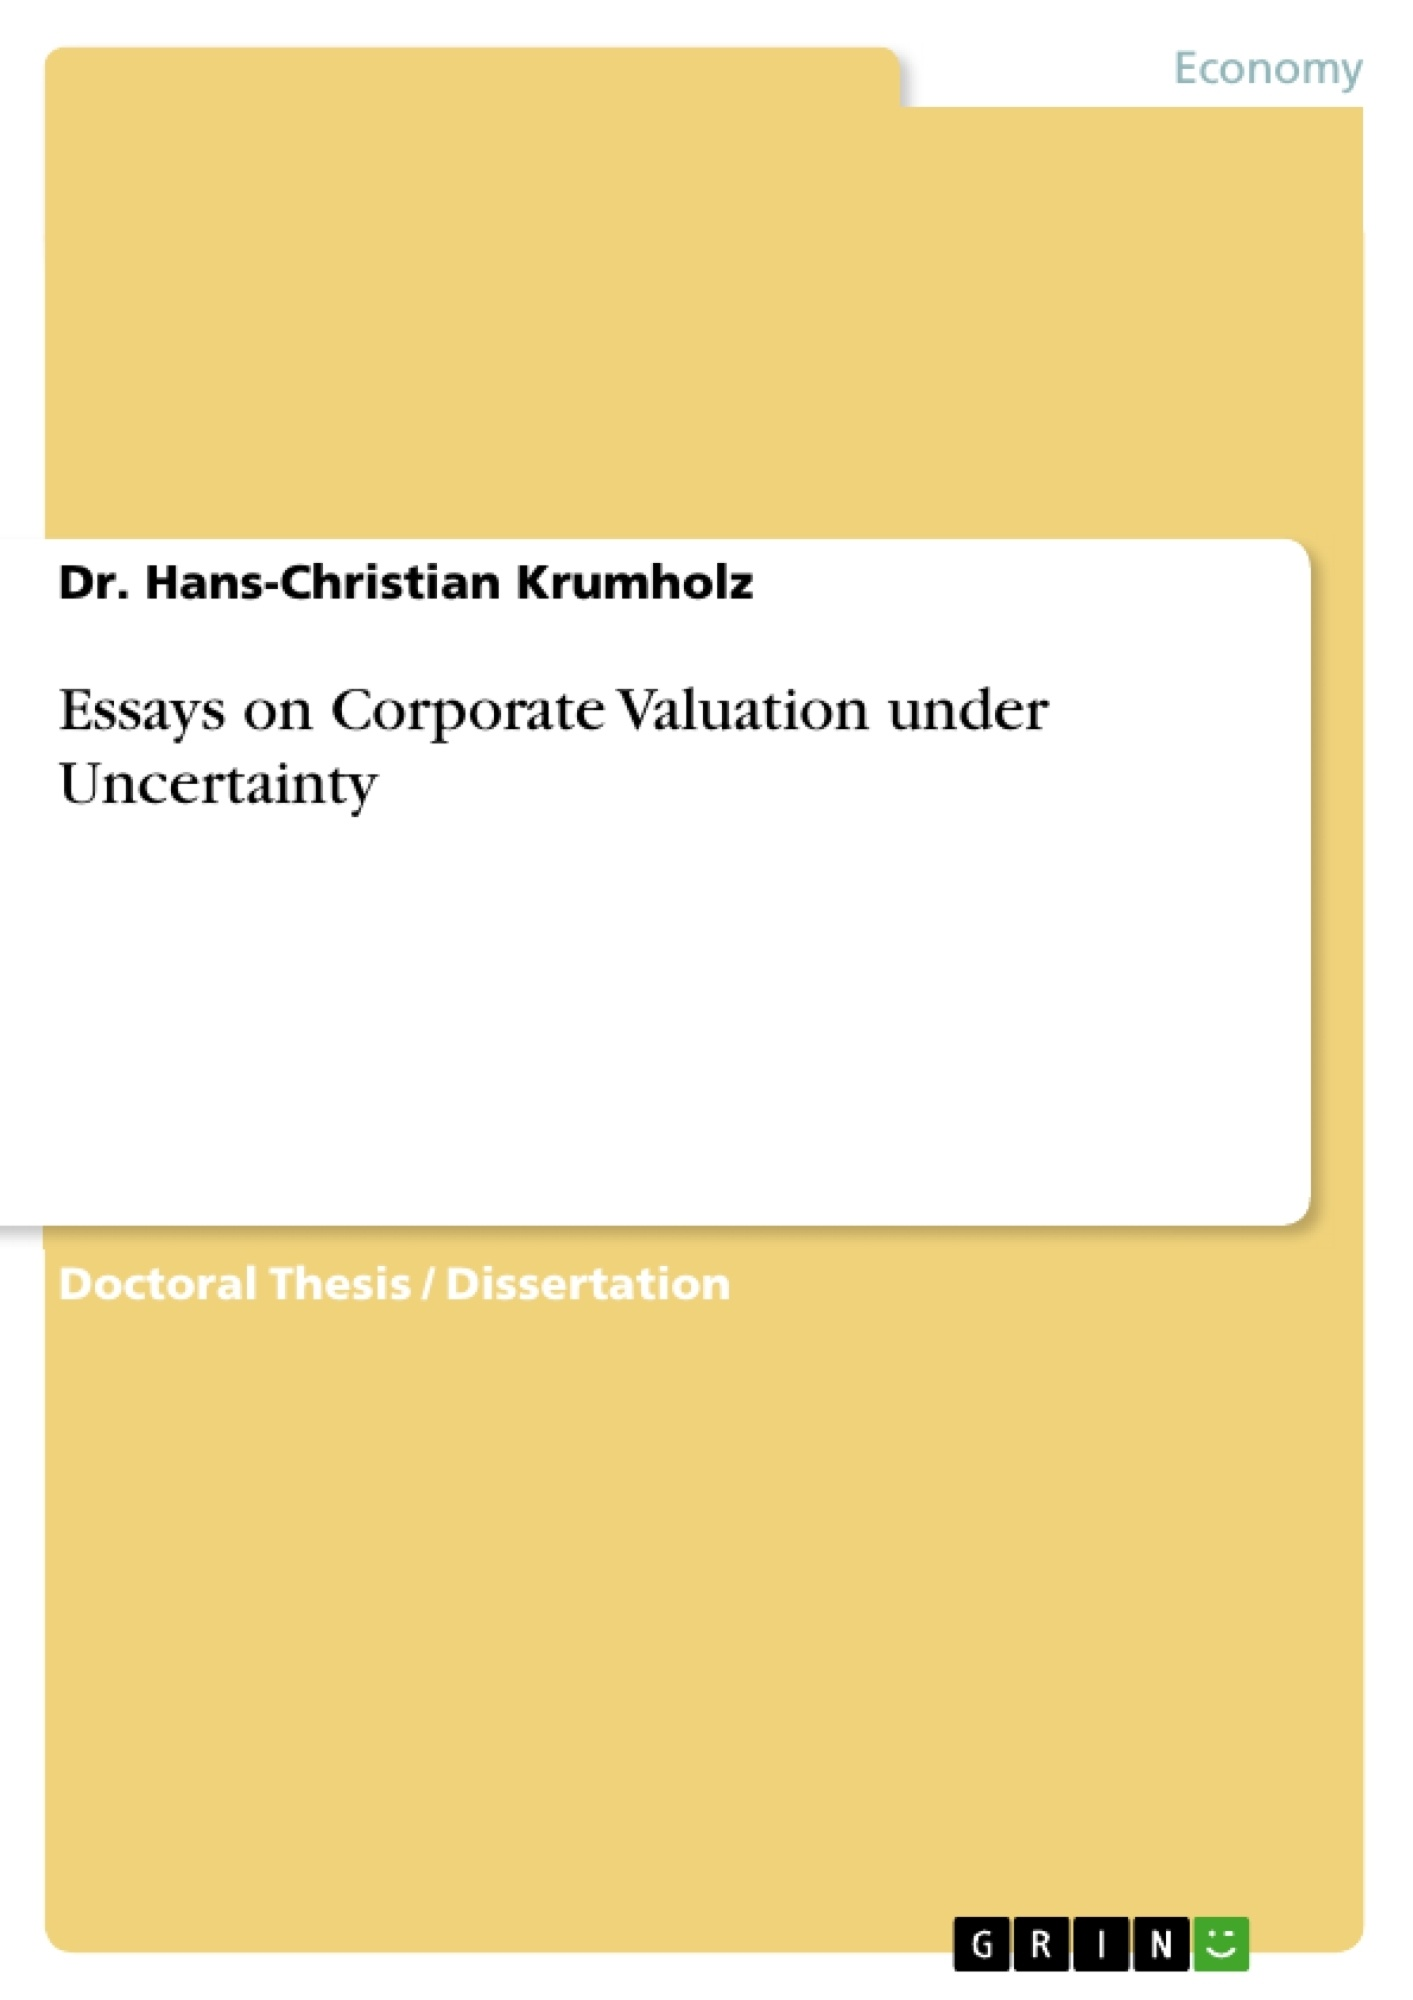 Title: Essays on Corporate Valuation under Uncertainty